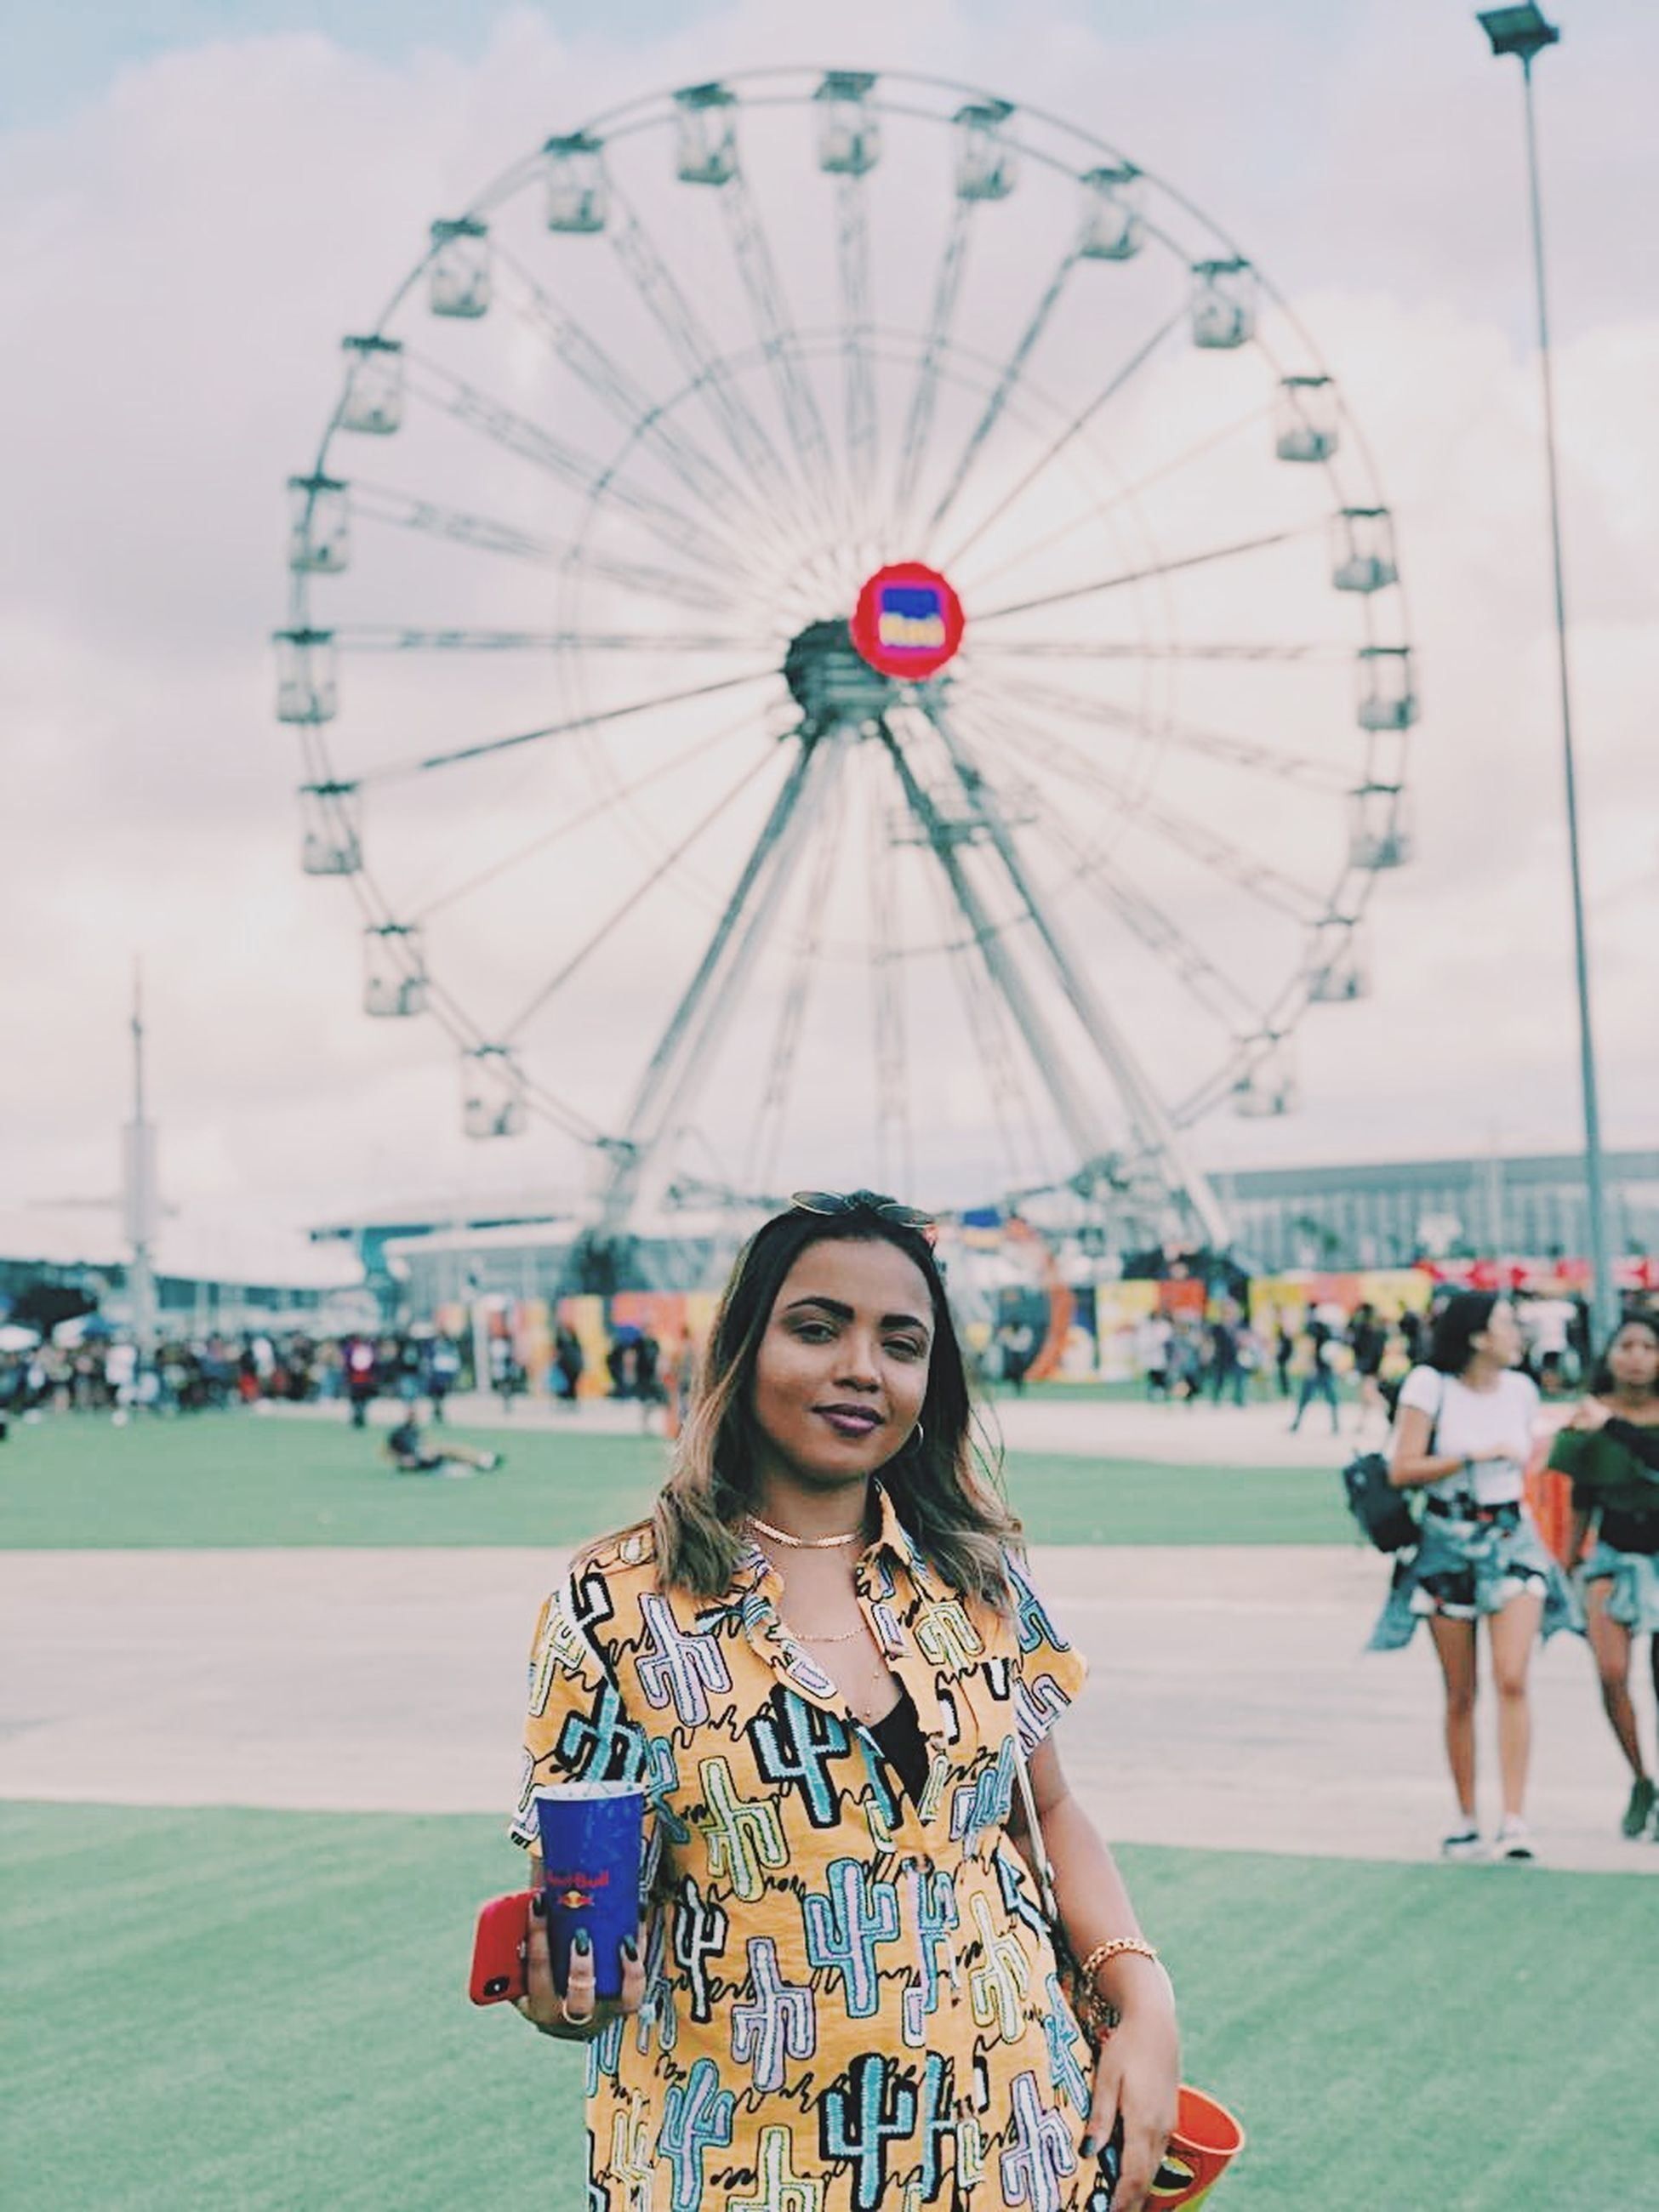 amusement park, amusement park ride, ferris wheel, leisure activity, real people, lifestyles, one person, women, focus on foreground, incidental people, arts culture and entertainment, young women, portrait, young adult, standing, front view, adult, casual clothing, architecture, hairstyle